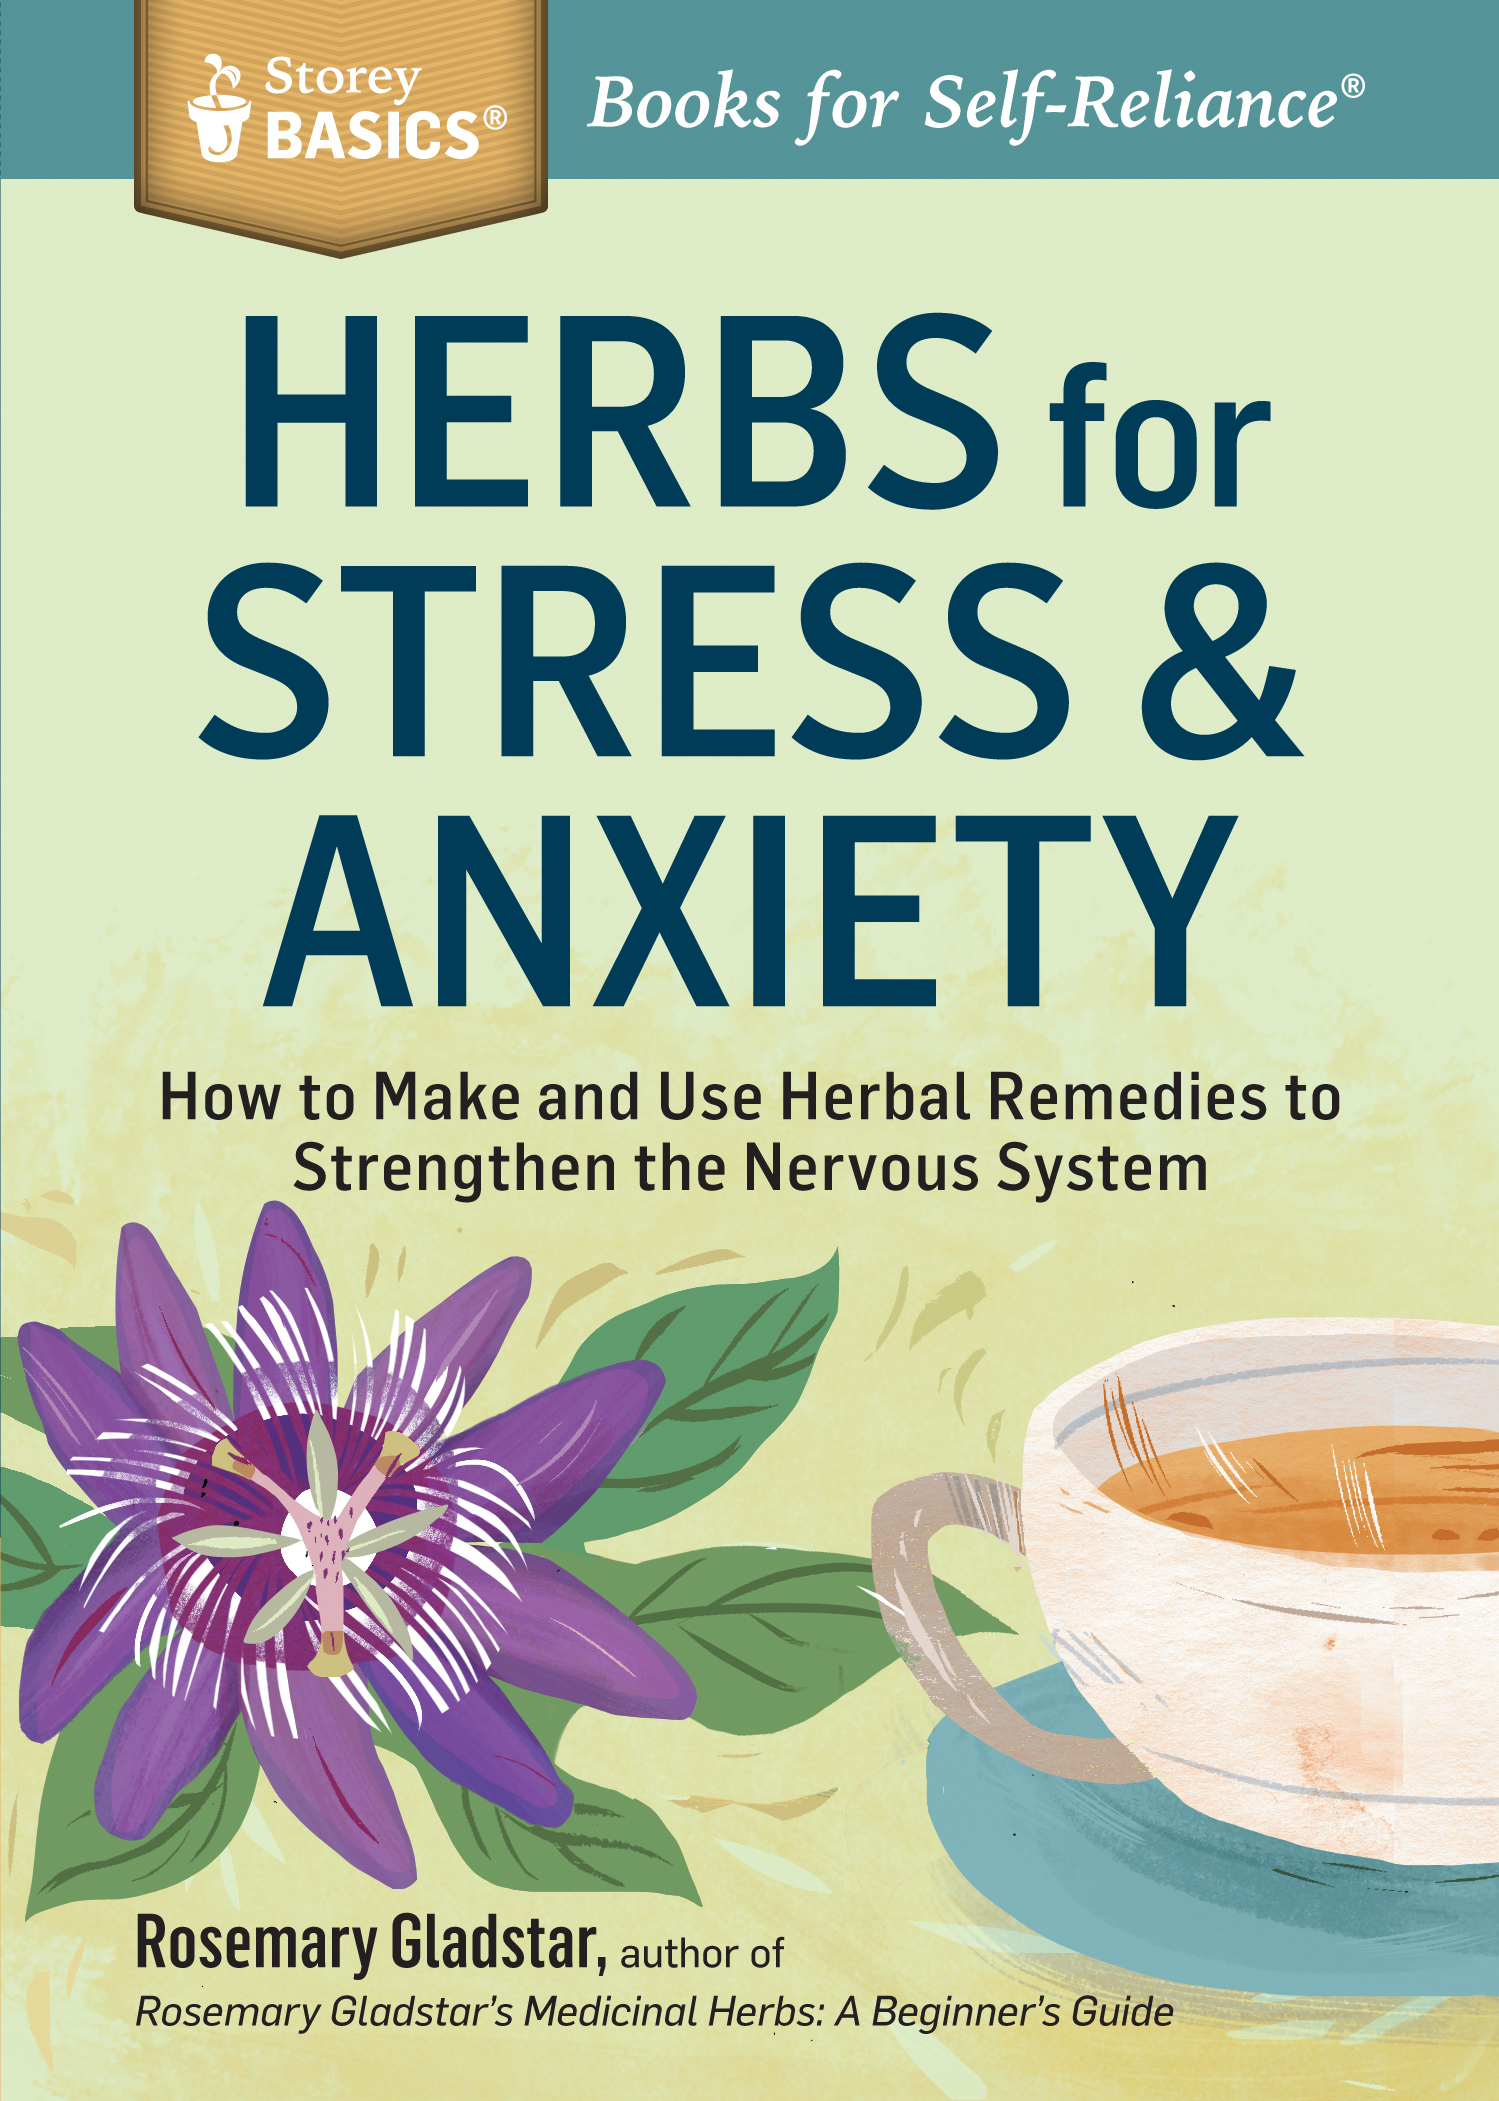 Herbs for Stress & Anxiety How to Make and Use Herbal Remedies to Strengthen the Nervous System. A Storey BASICS® Title - Rosemary Gladstar